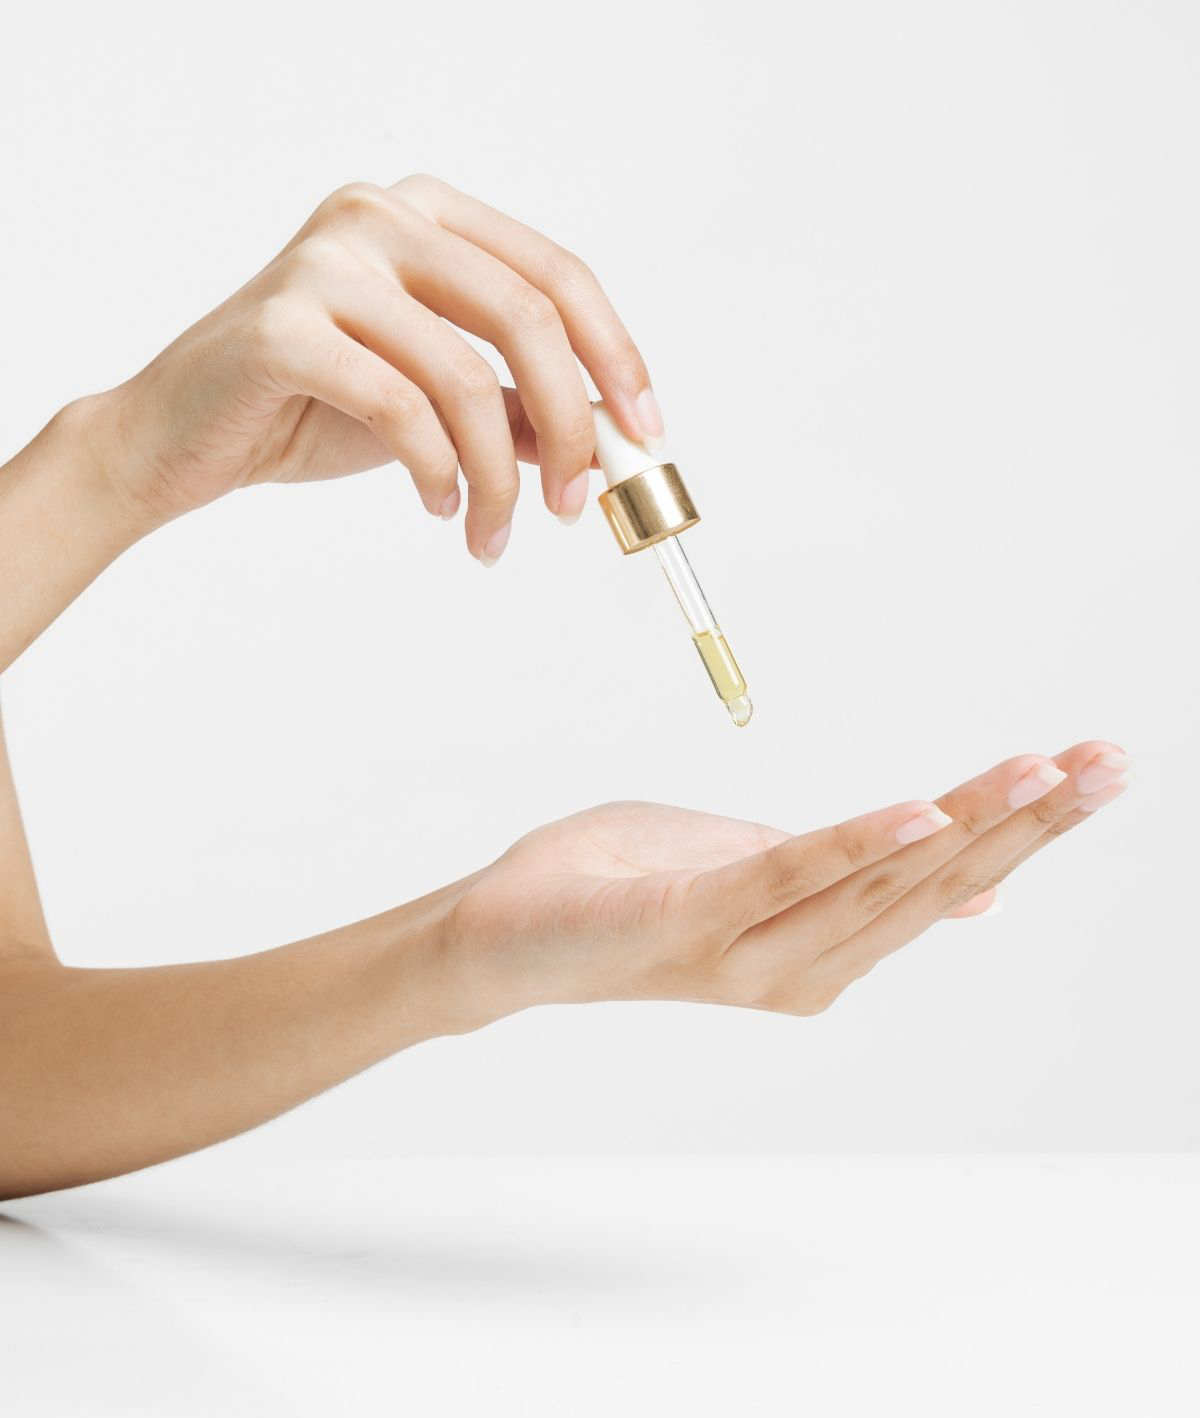 Pouring essential oil for period pain.